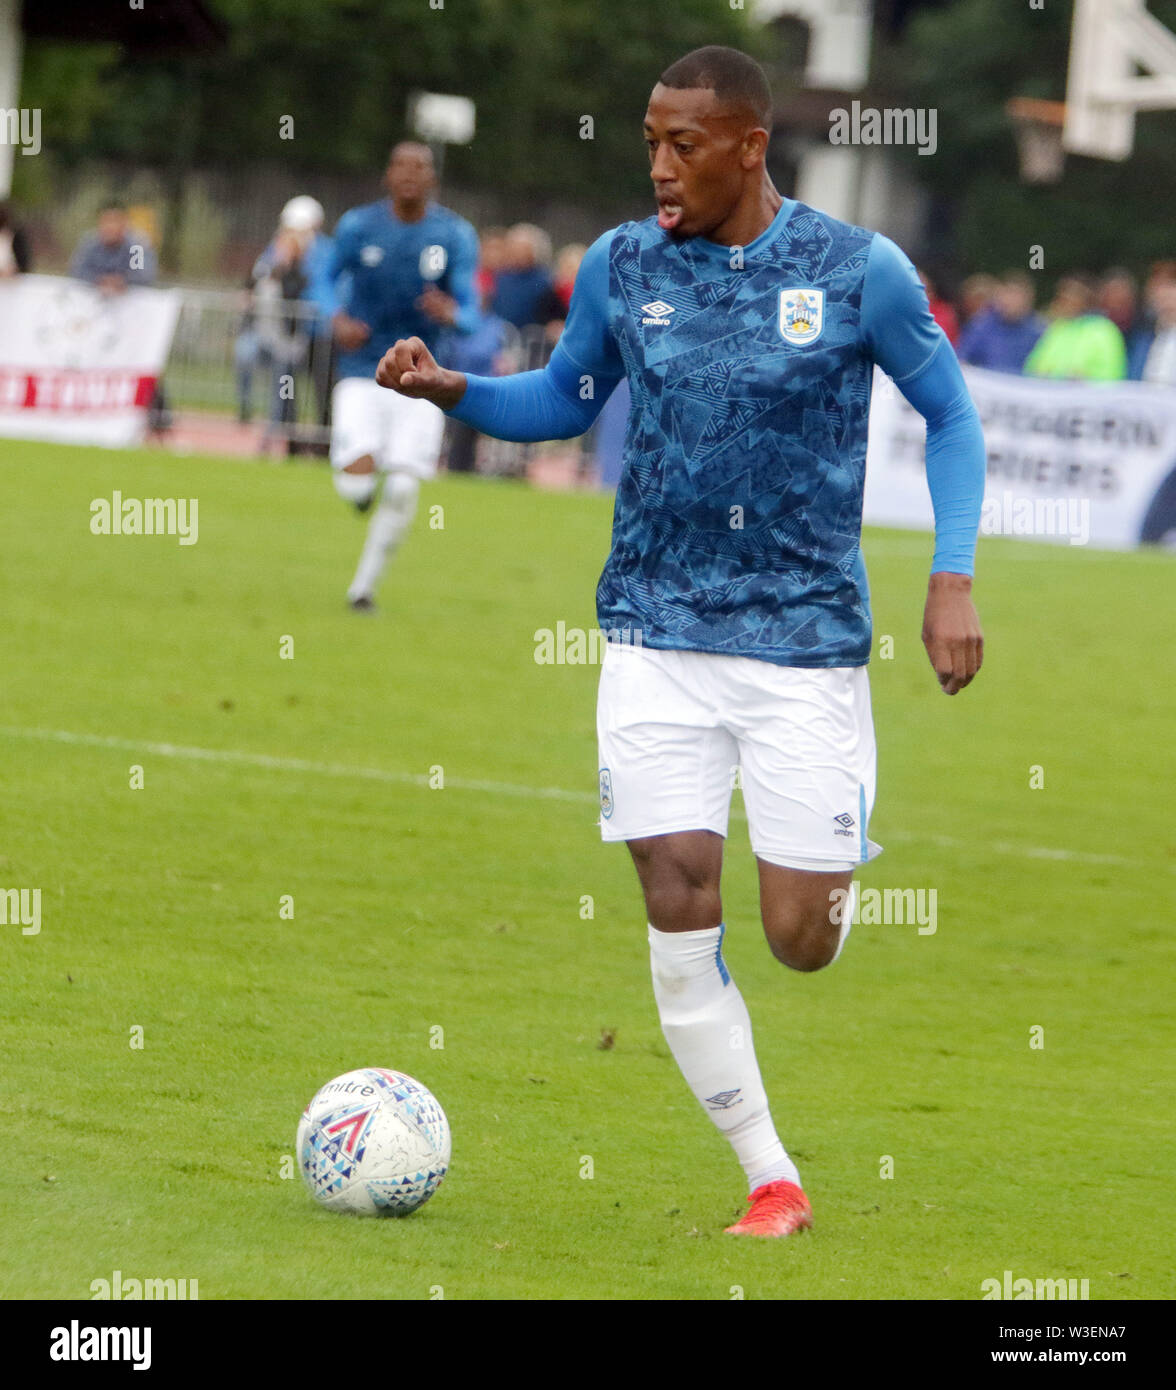 Kitzbuehel, Austria. 13th July, 2019. Rajiv van PARRA (Huddersfield).pre season friendly 2019/20, .Huddersfield Town FC vs Hamburger SV.Stadion Kitzbuehel/Austria, July 13, 2019, .Huddersfield Town, the relegated team of the Premiere League wins in a pre season friendly against the former German champion Hamburger SV. Credit: Wolfgang Fehrmann/ZUMA Wire/Alamy Live News - Stock Image